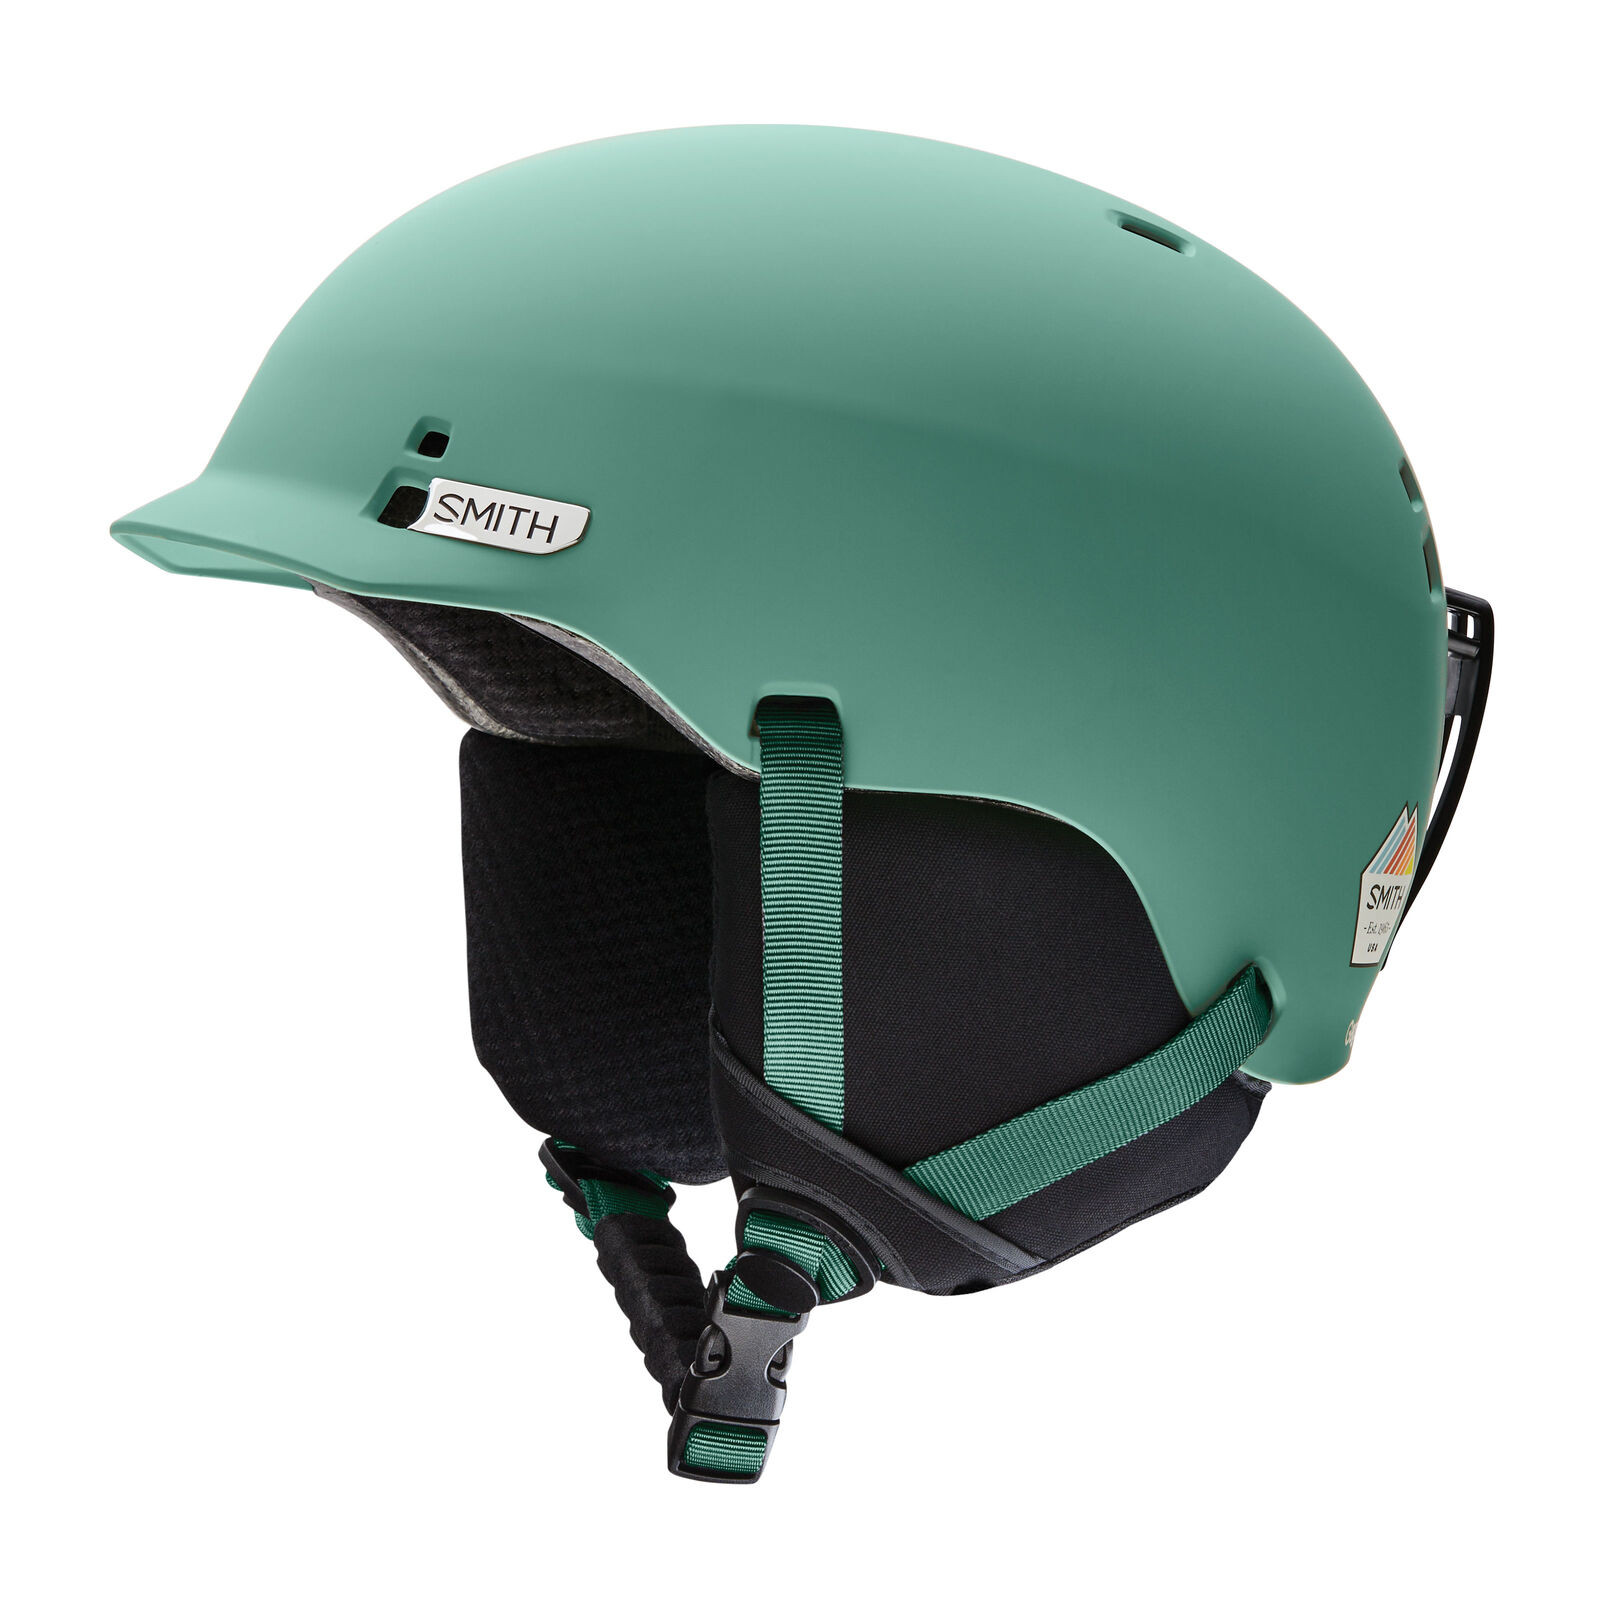 Smith  ski snowboard helmet gage green adjustable plain colours  welcome to buy